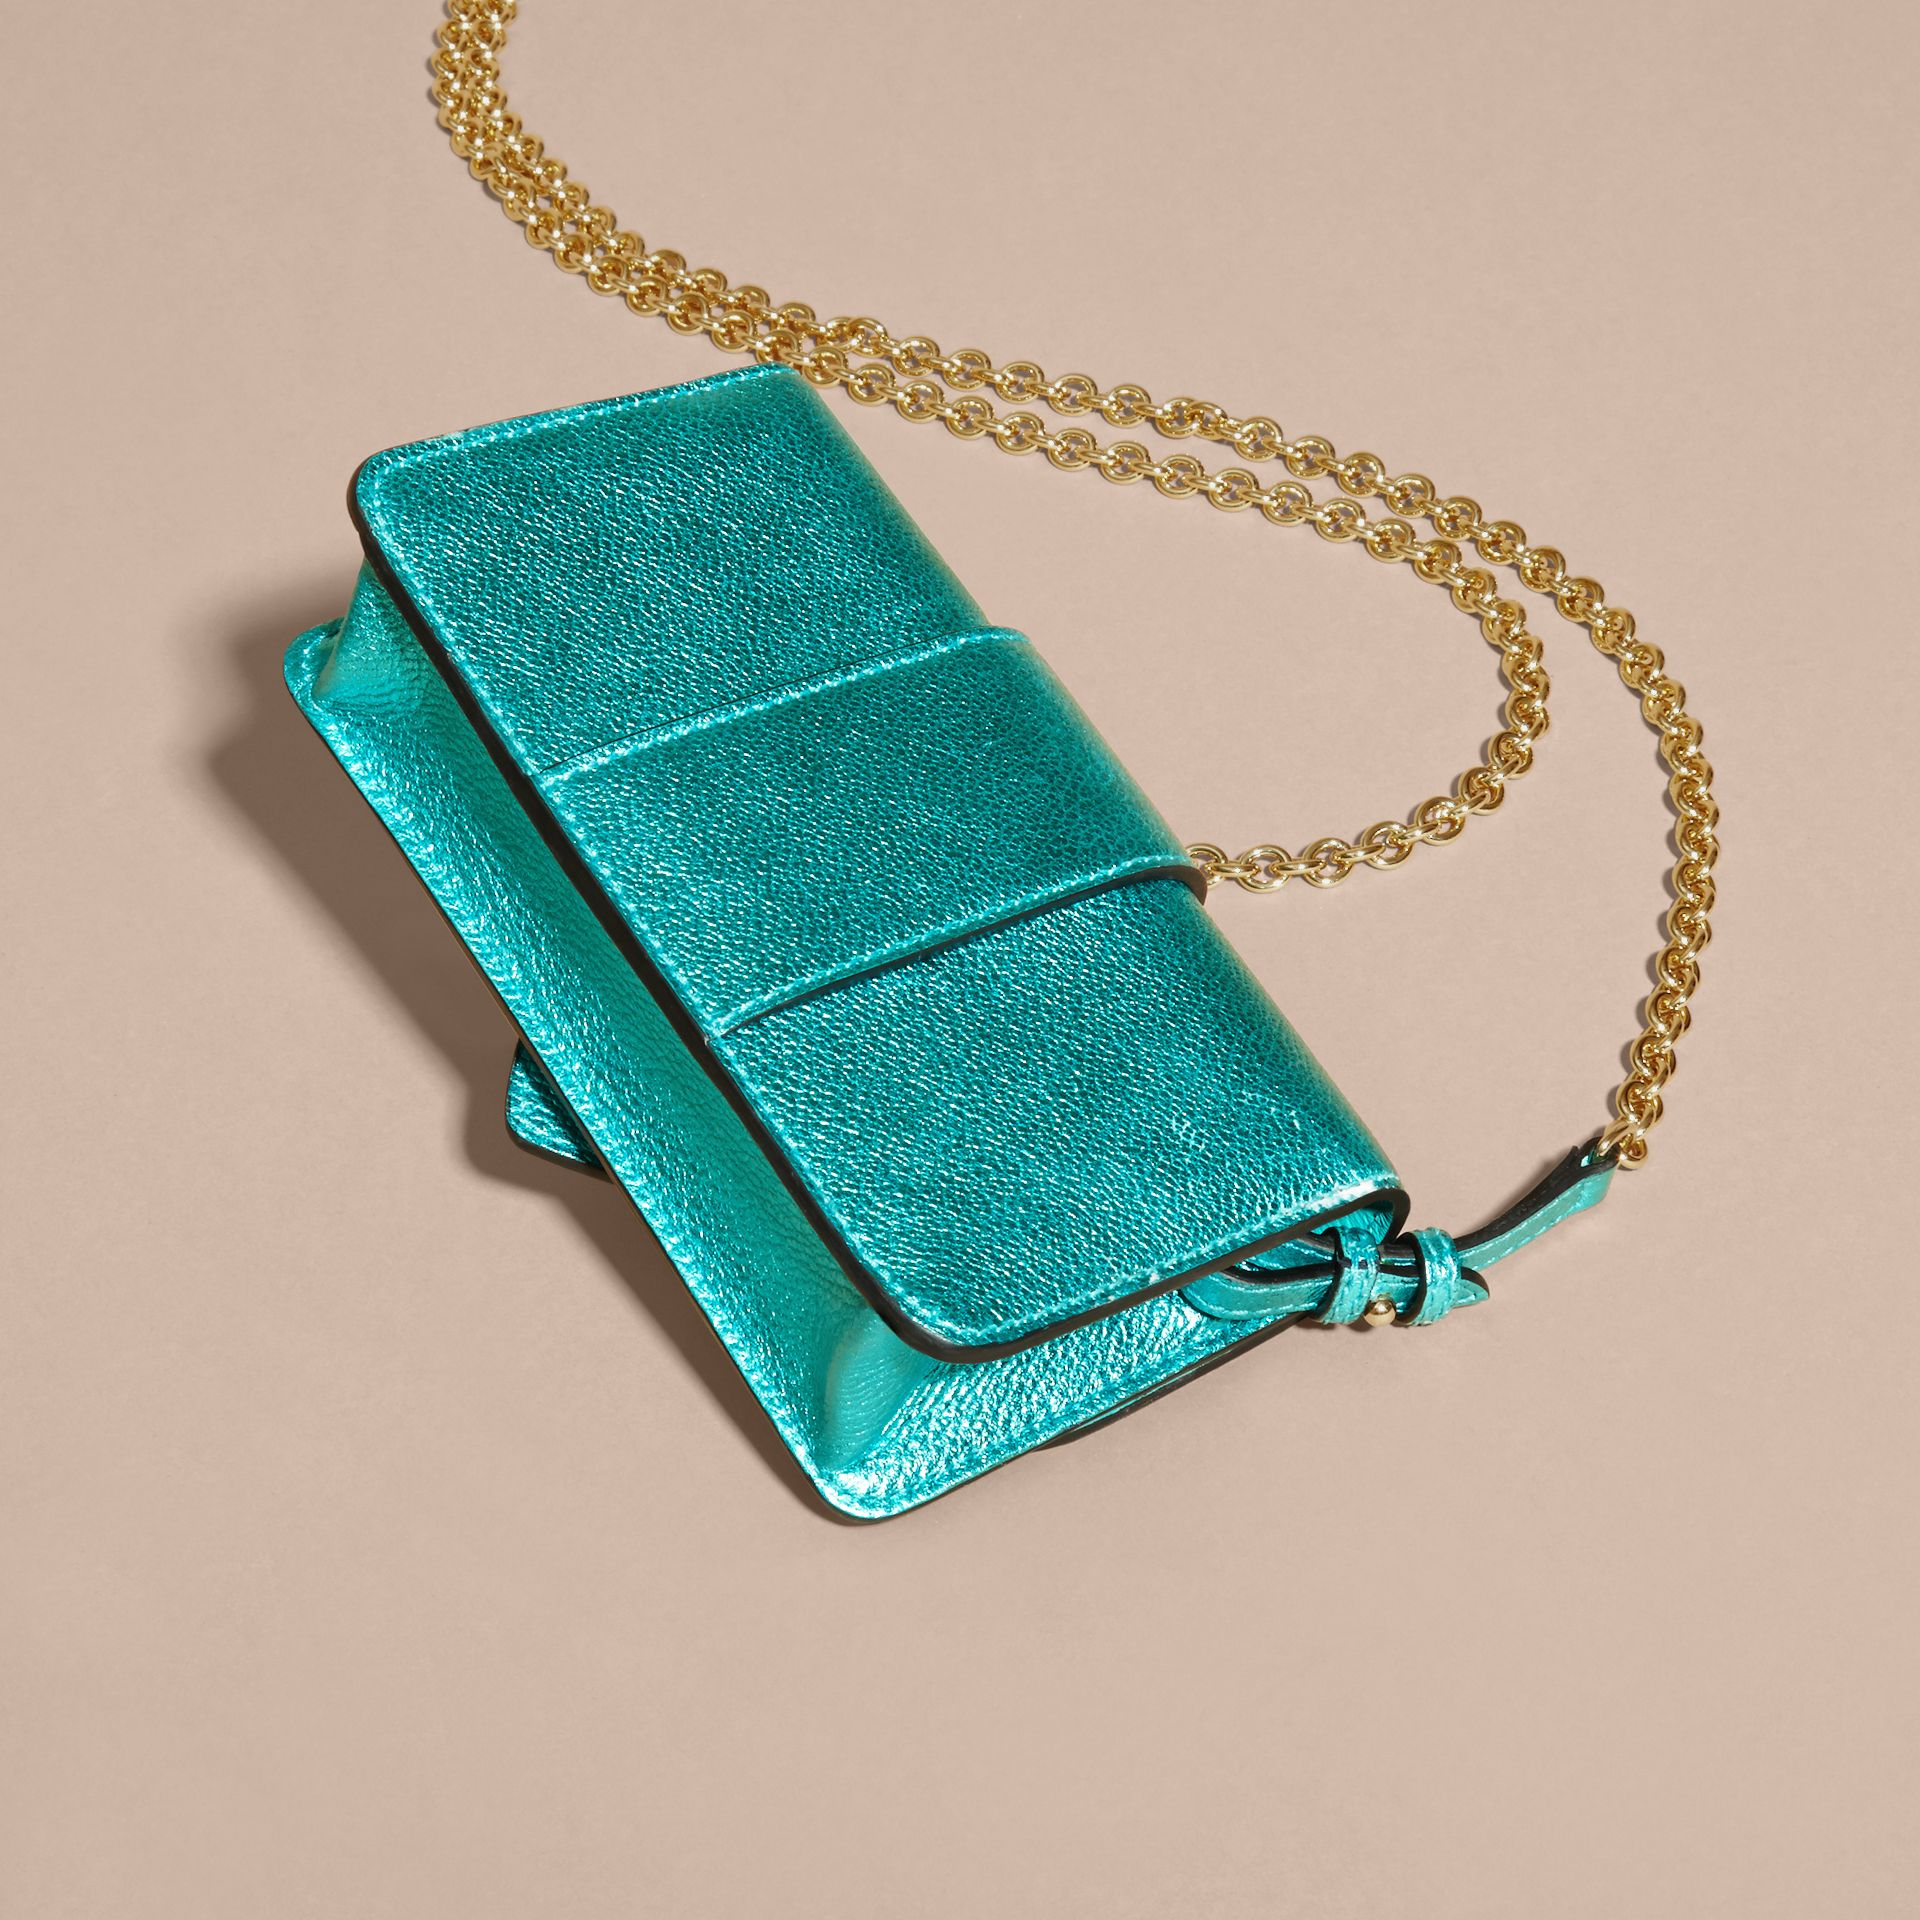 Emerald The Mini Buckle Bag in Metallic Grainy Leather Emerald - gallery image 5